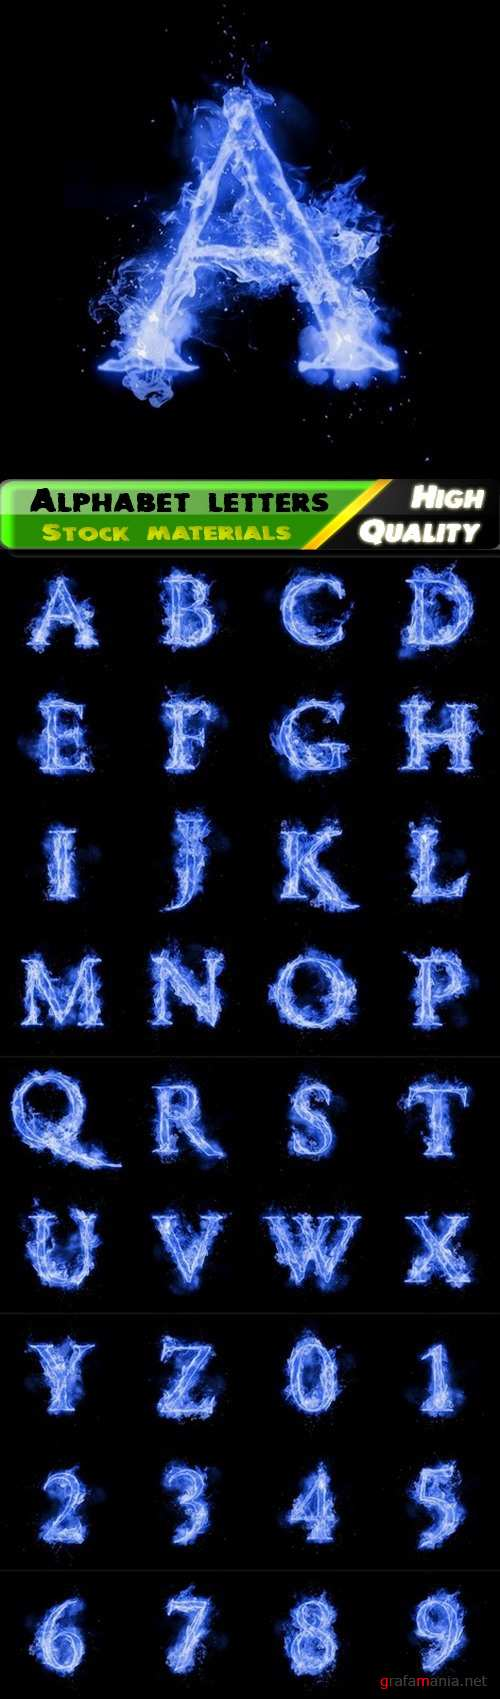 Alphabet letters and font with natural gas fire or burning flame 36 Jpg